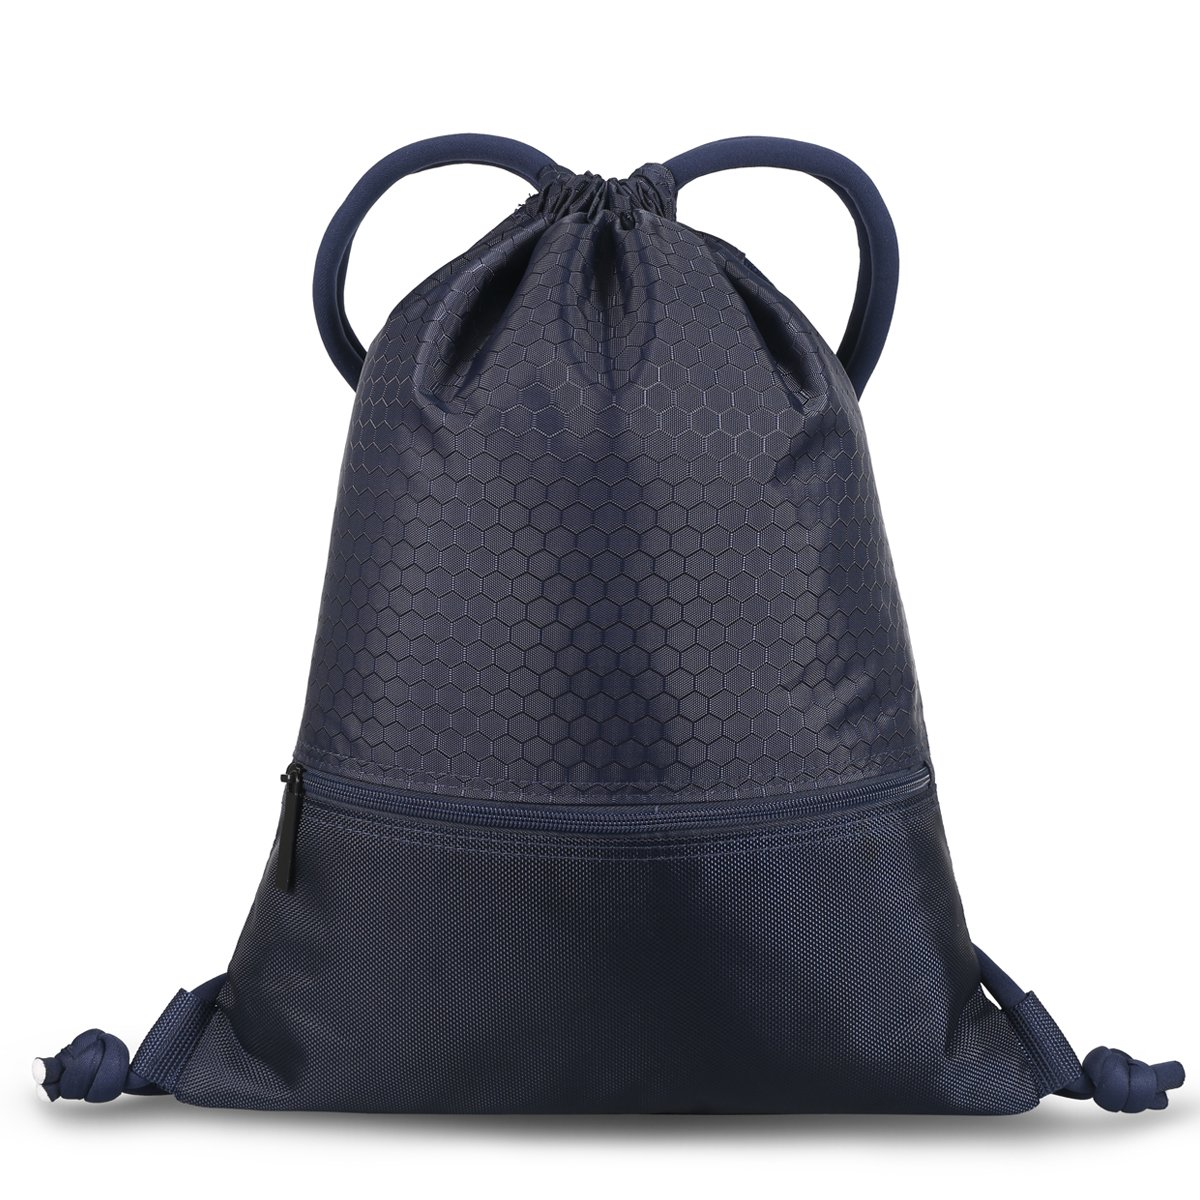 Double Sturdy Drawstring Bag With Pockets Waterproof | For Sports & Workout Gear | Large Capacity String Backpack | 8 Colors (Large, Navy) by Haoguagua (Image #2)